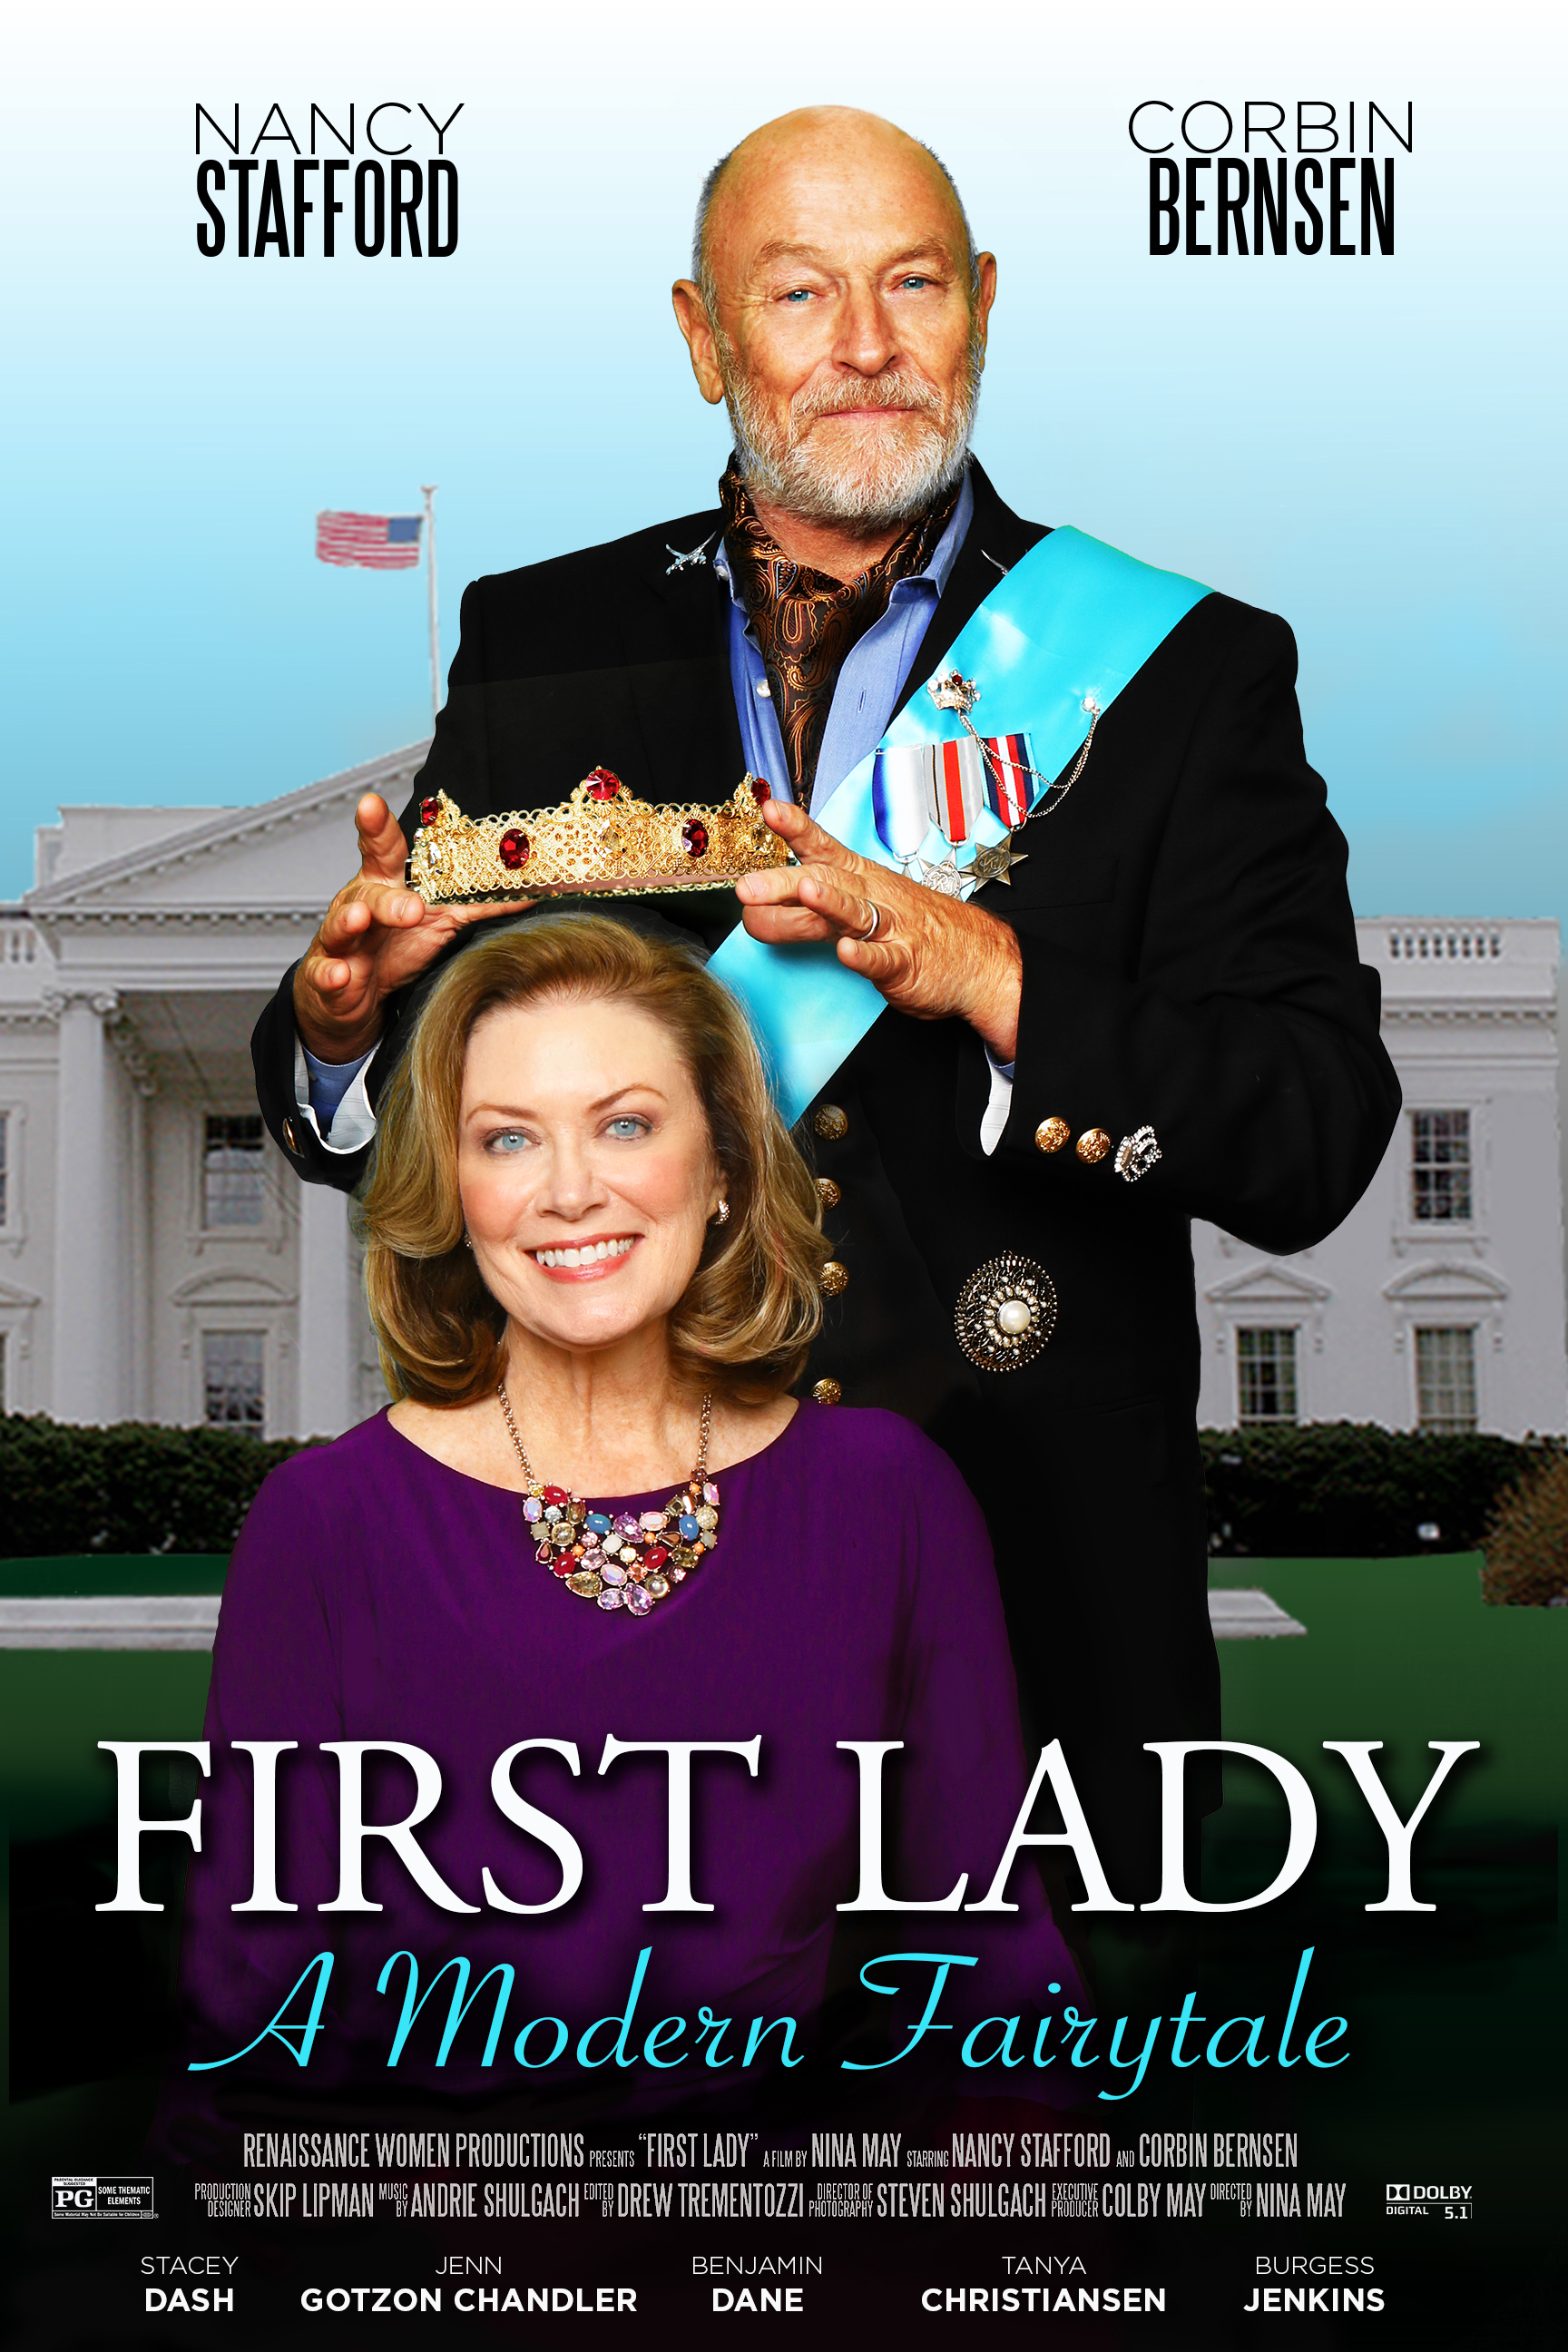 Download First Lady (2020) WebRip 720p Full Movie [In English] With Hindi Subtitles Full Movie Online On 1xcinema.com